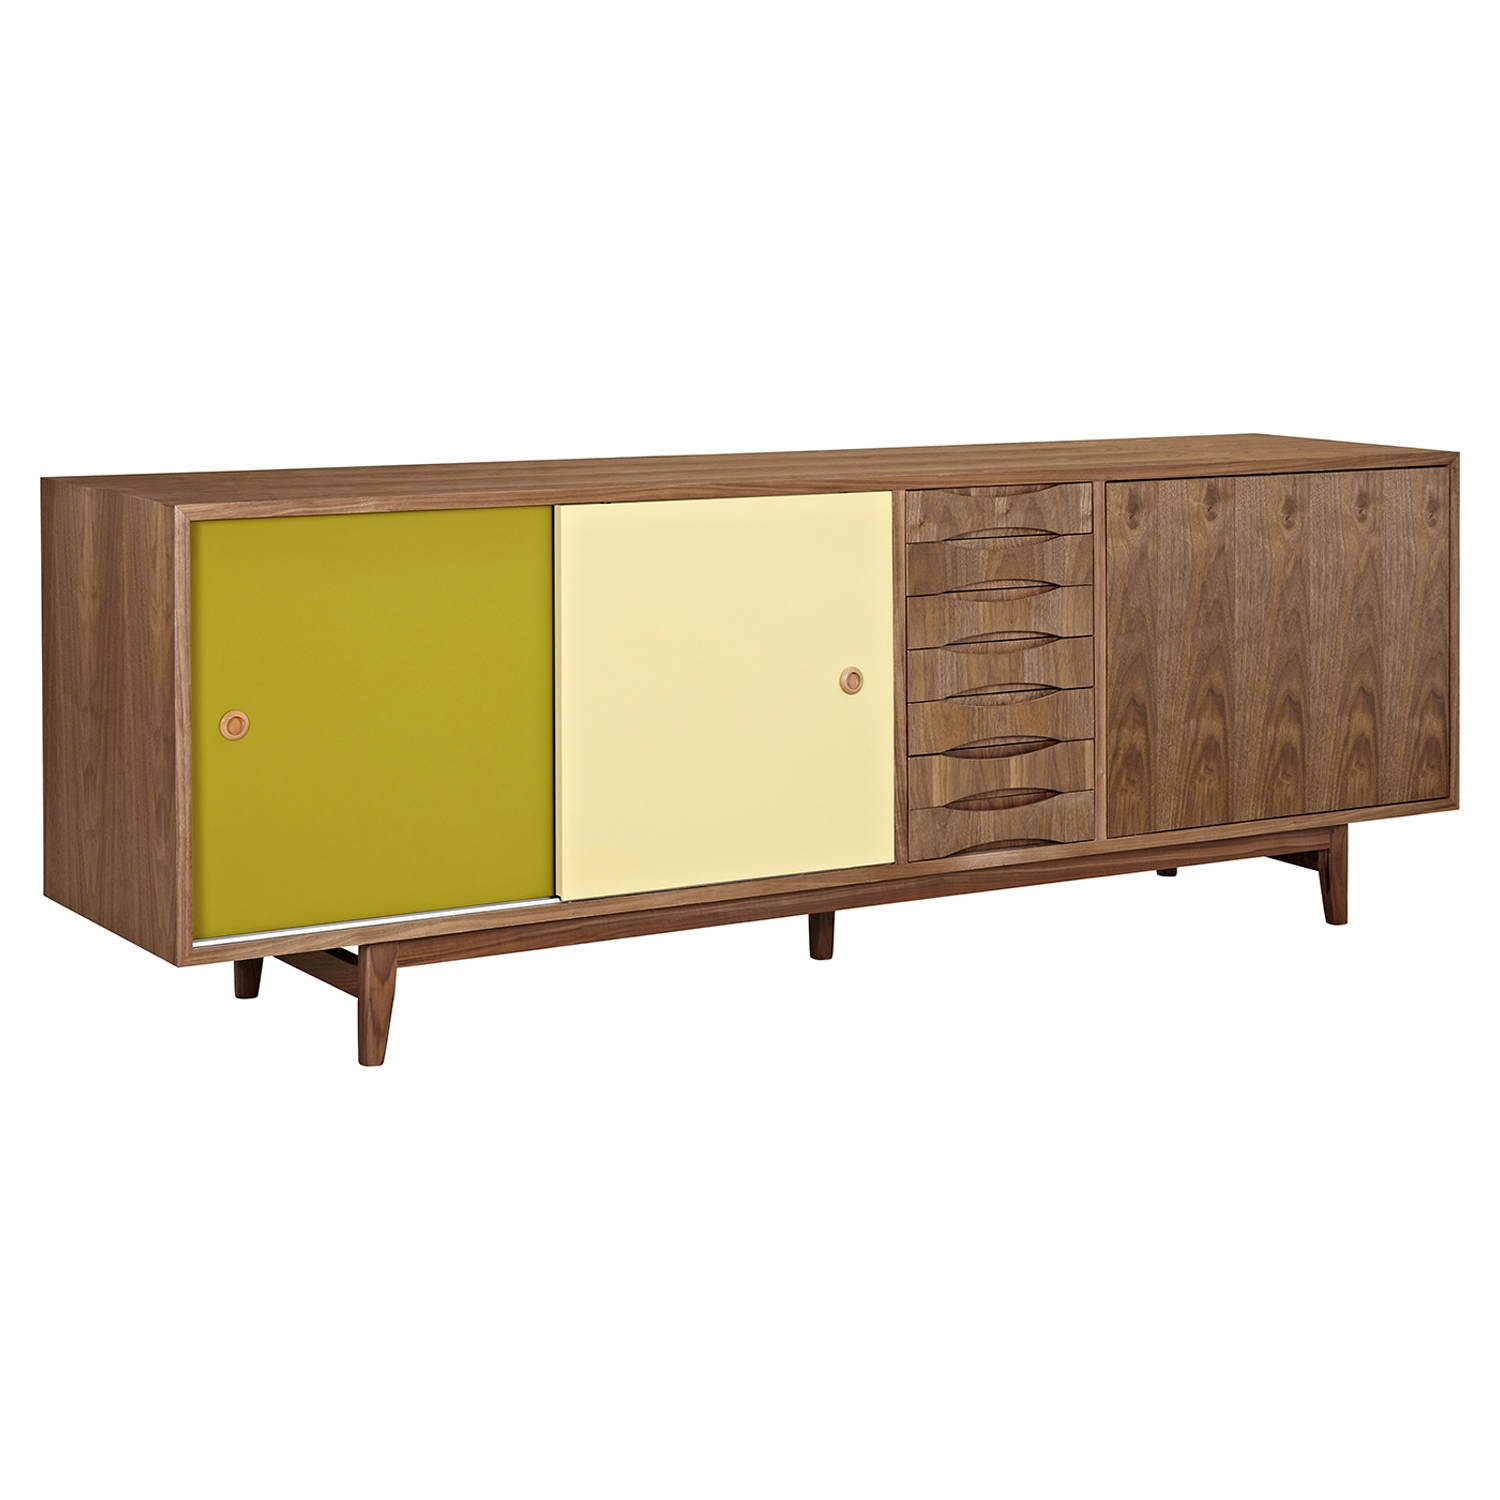 Alma 2 Sliding Doors Sideboard - Walnut with Green Door